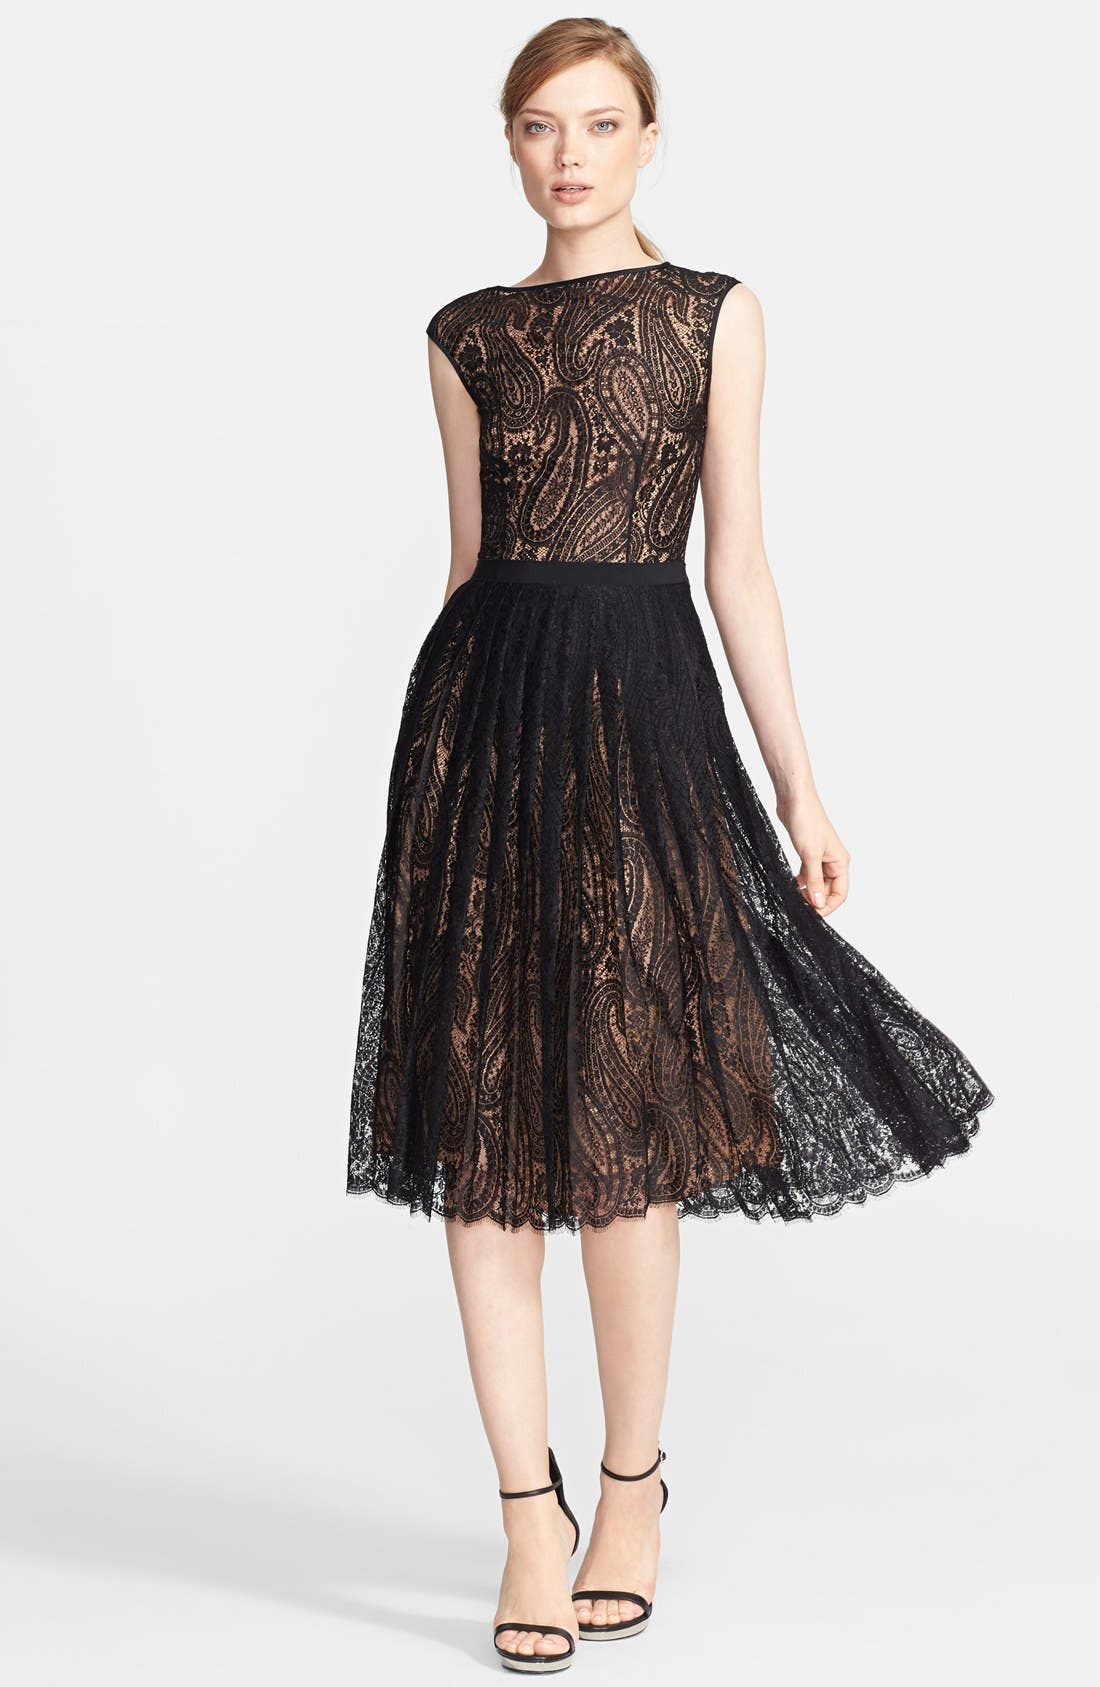 Main Image - Michael Kors Boatneck Paisley Lace Dress